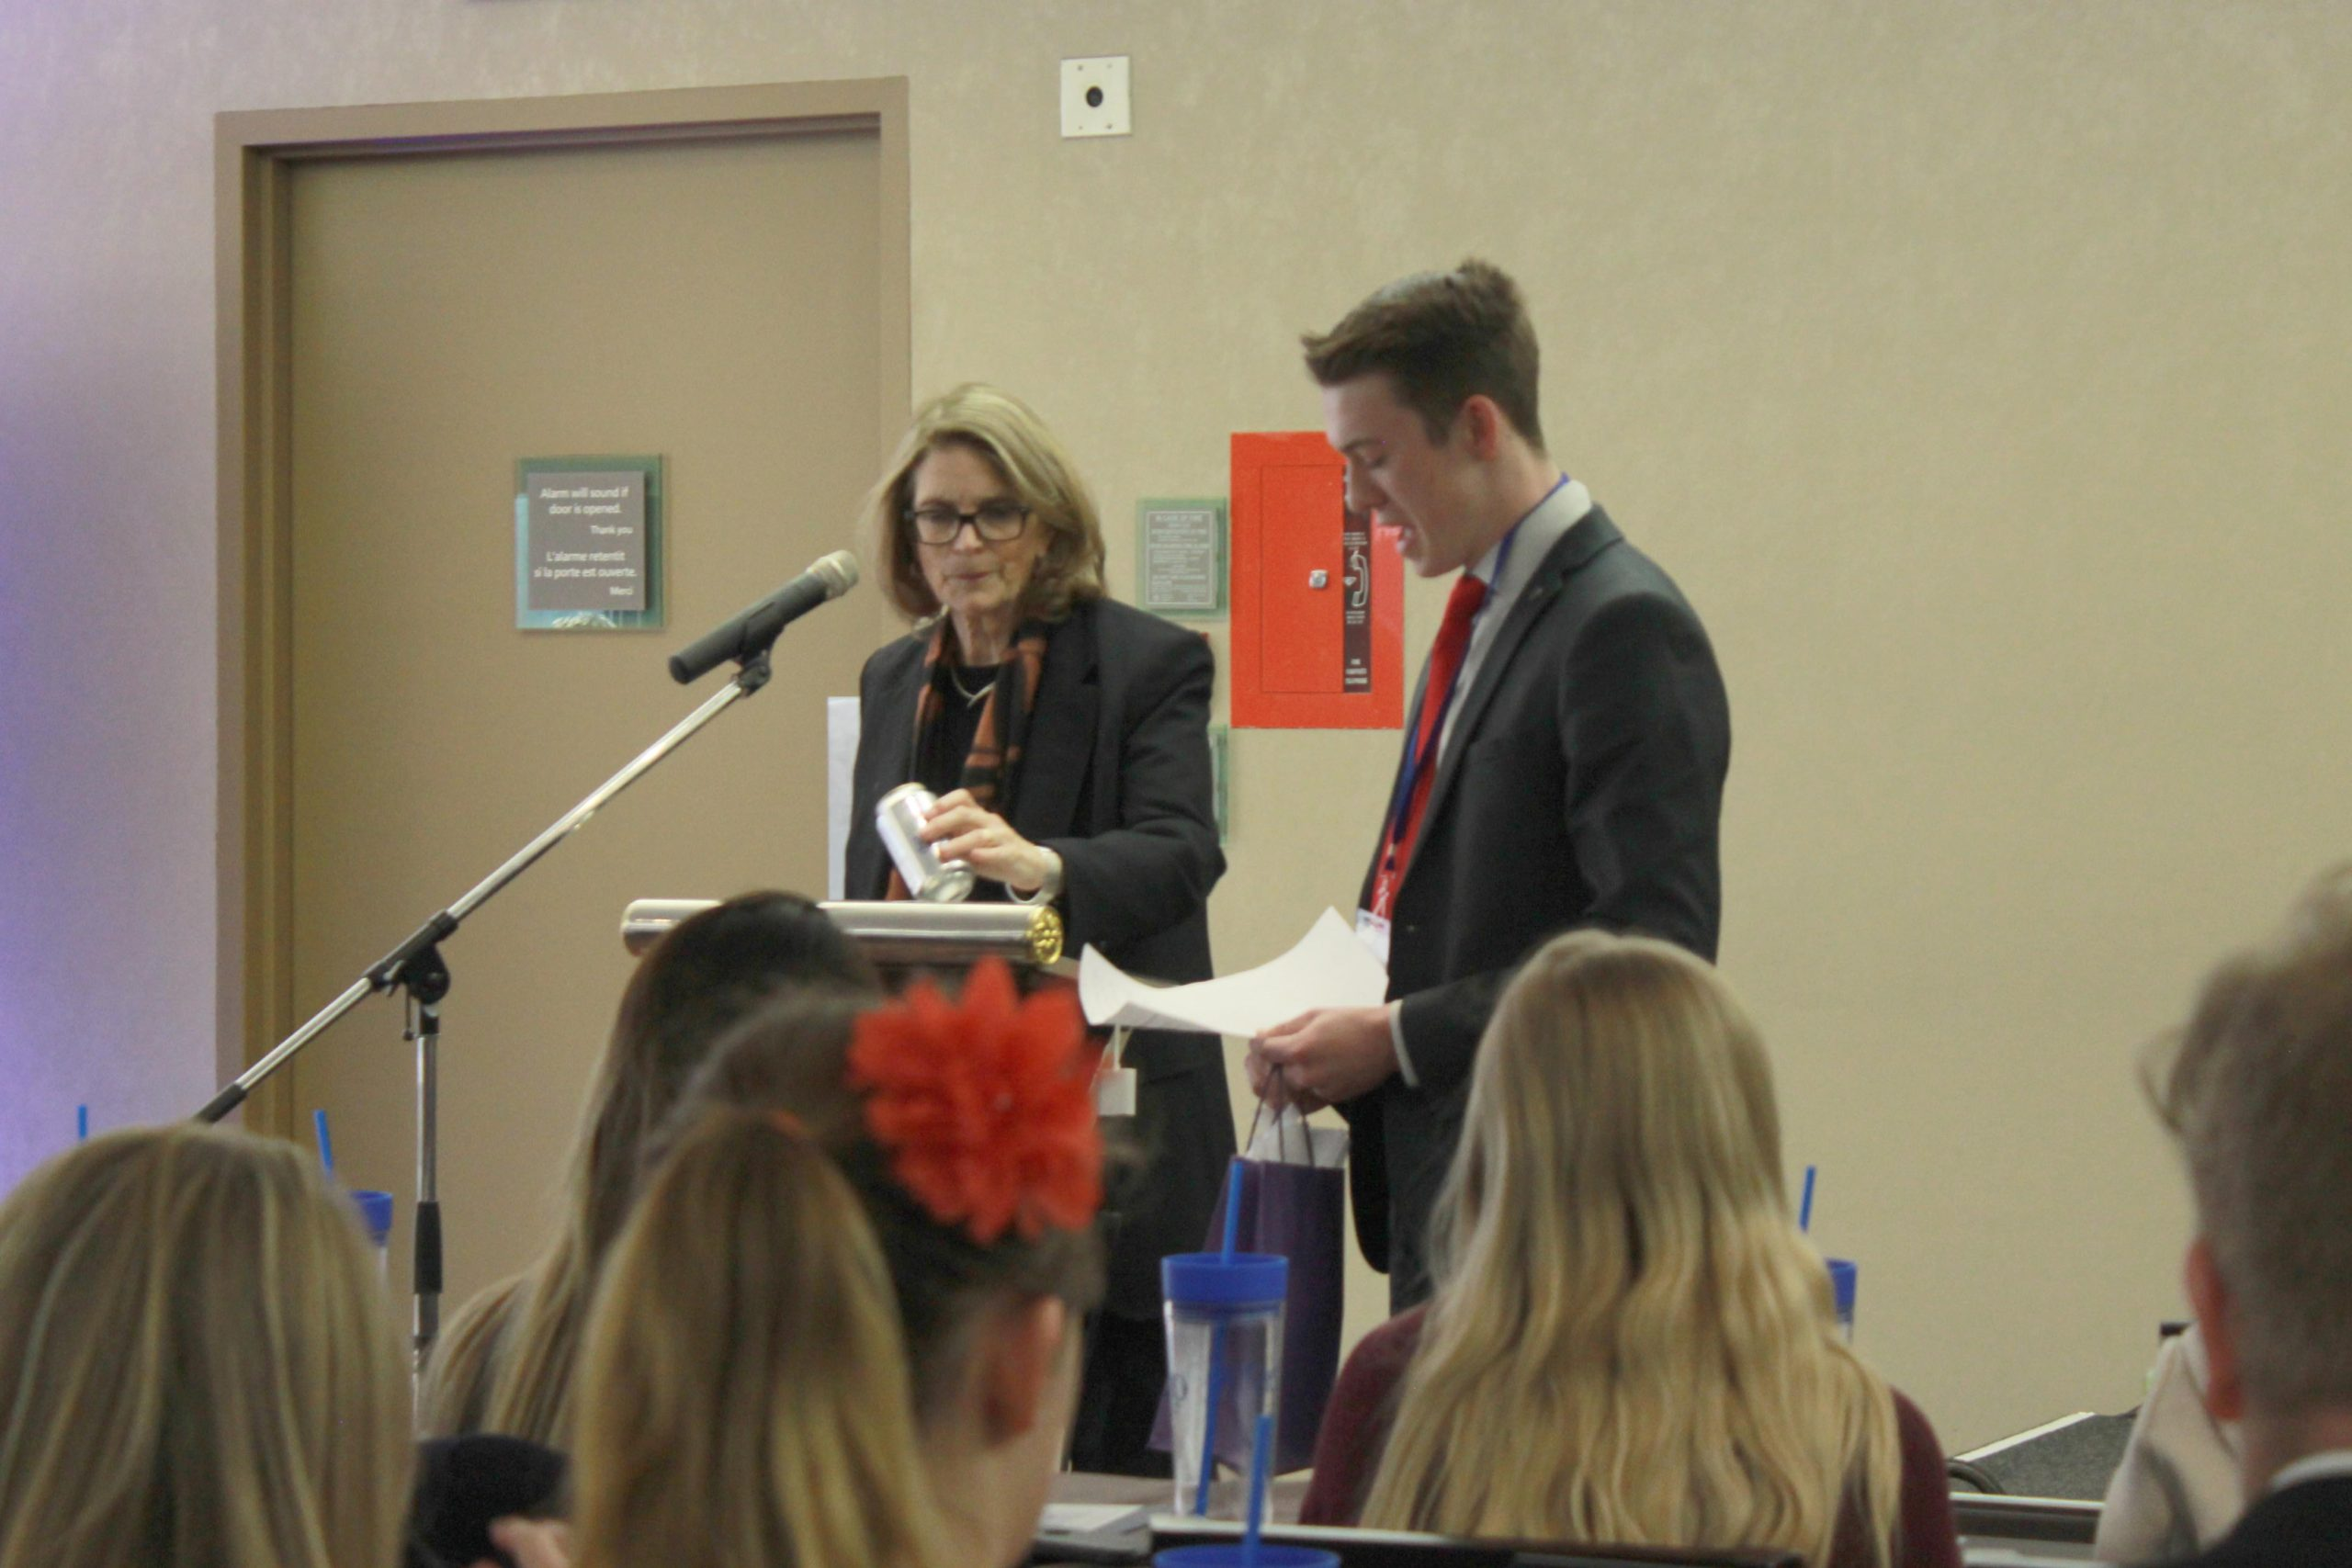 Student Trustee Elections during the COVID-19 Pandemic